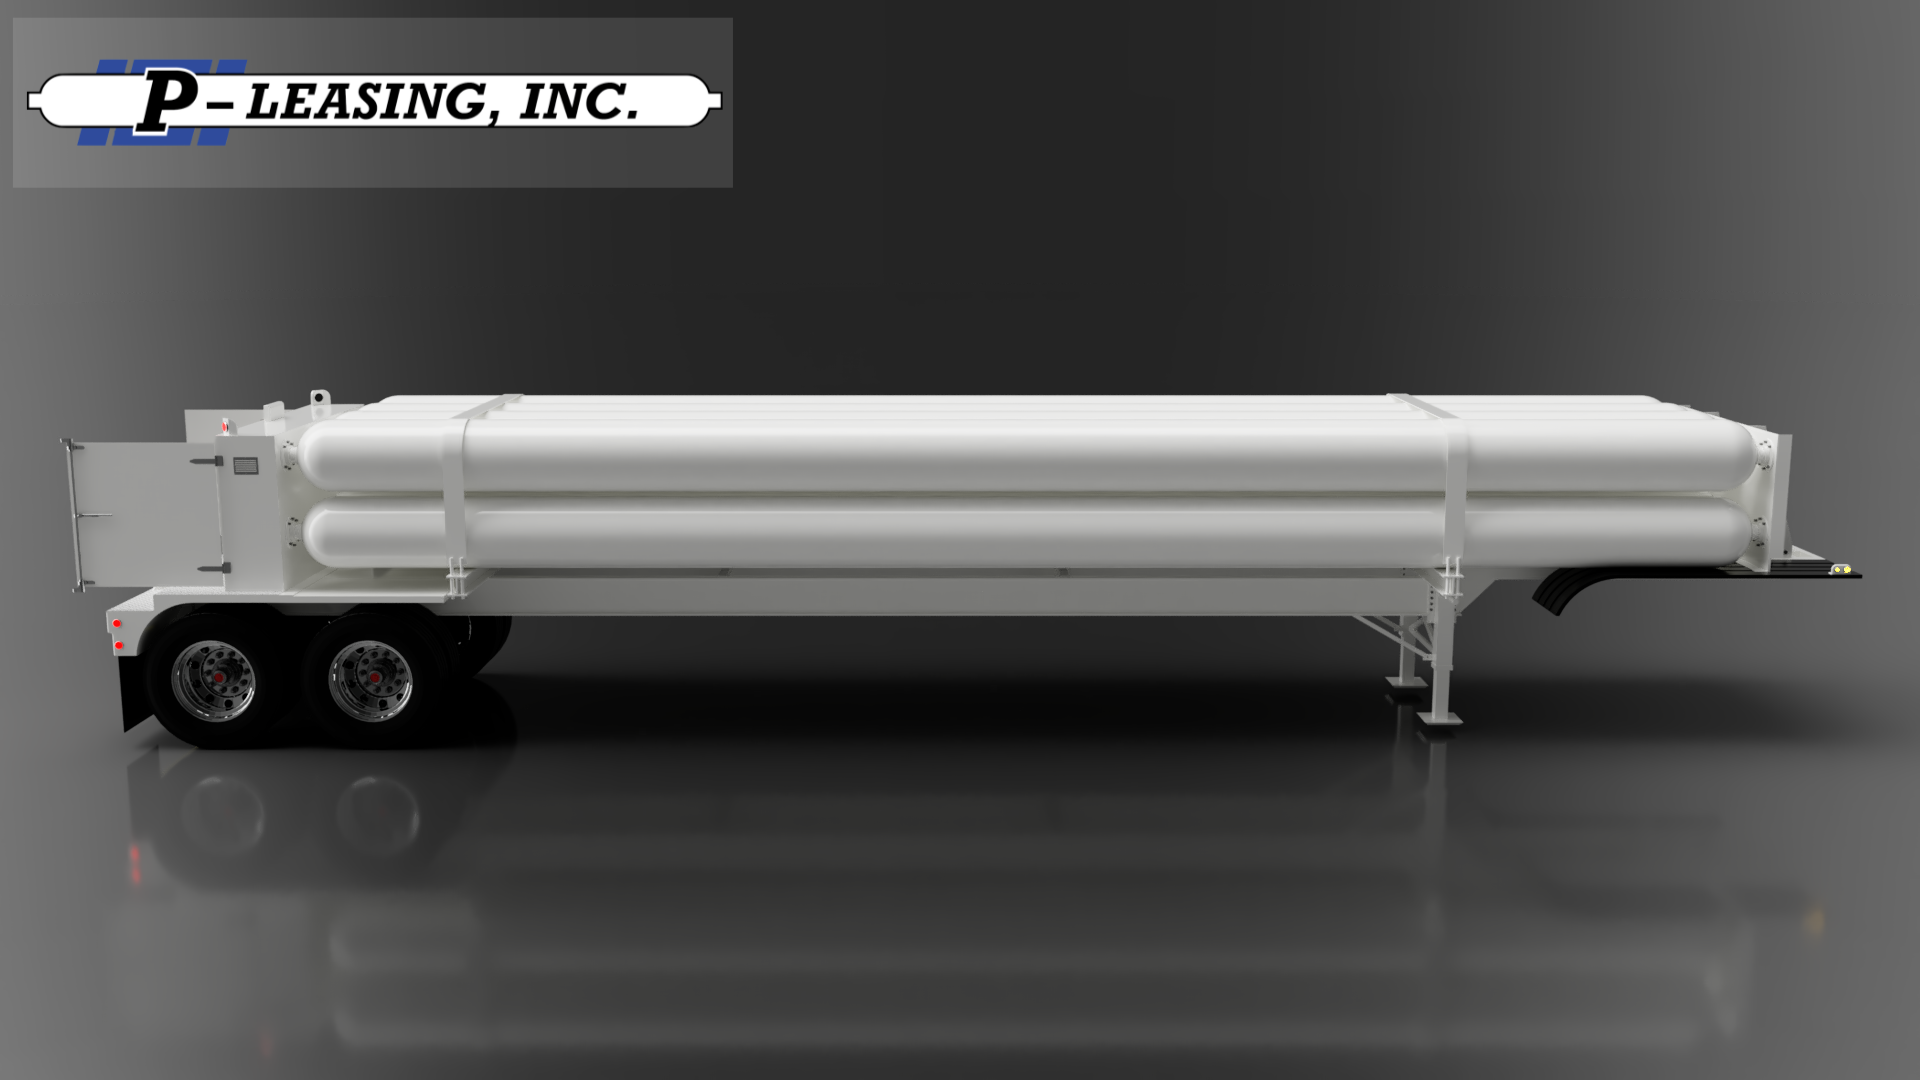 P-Leasing Jumbo Compressed Gas Tube Trailer